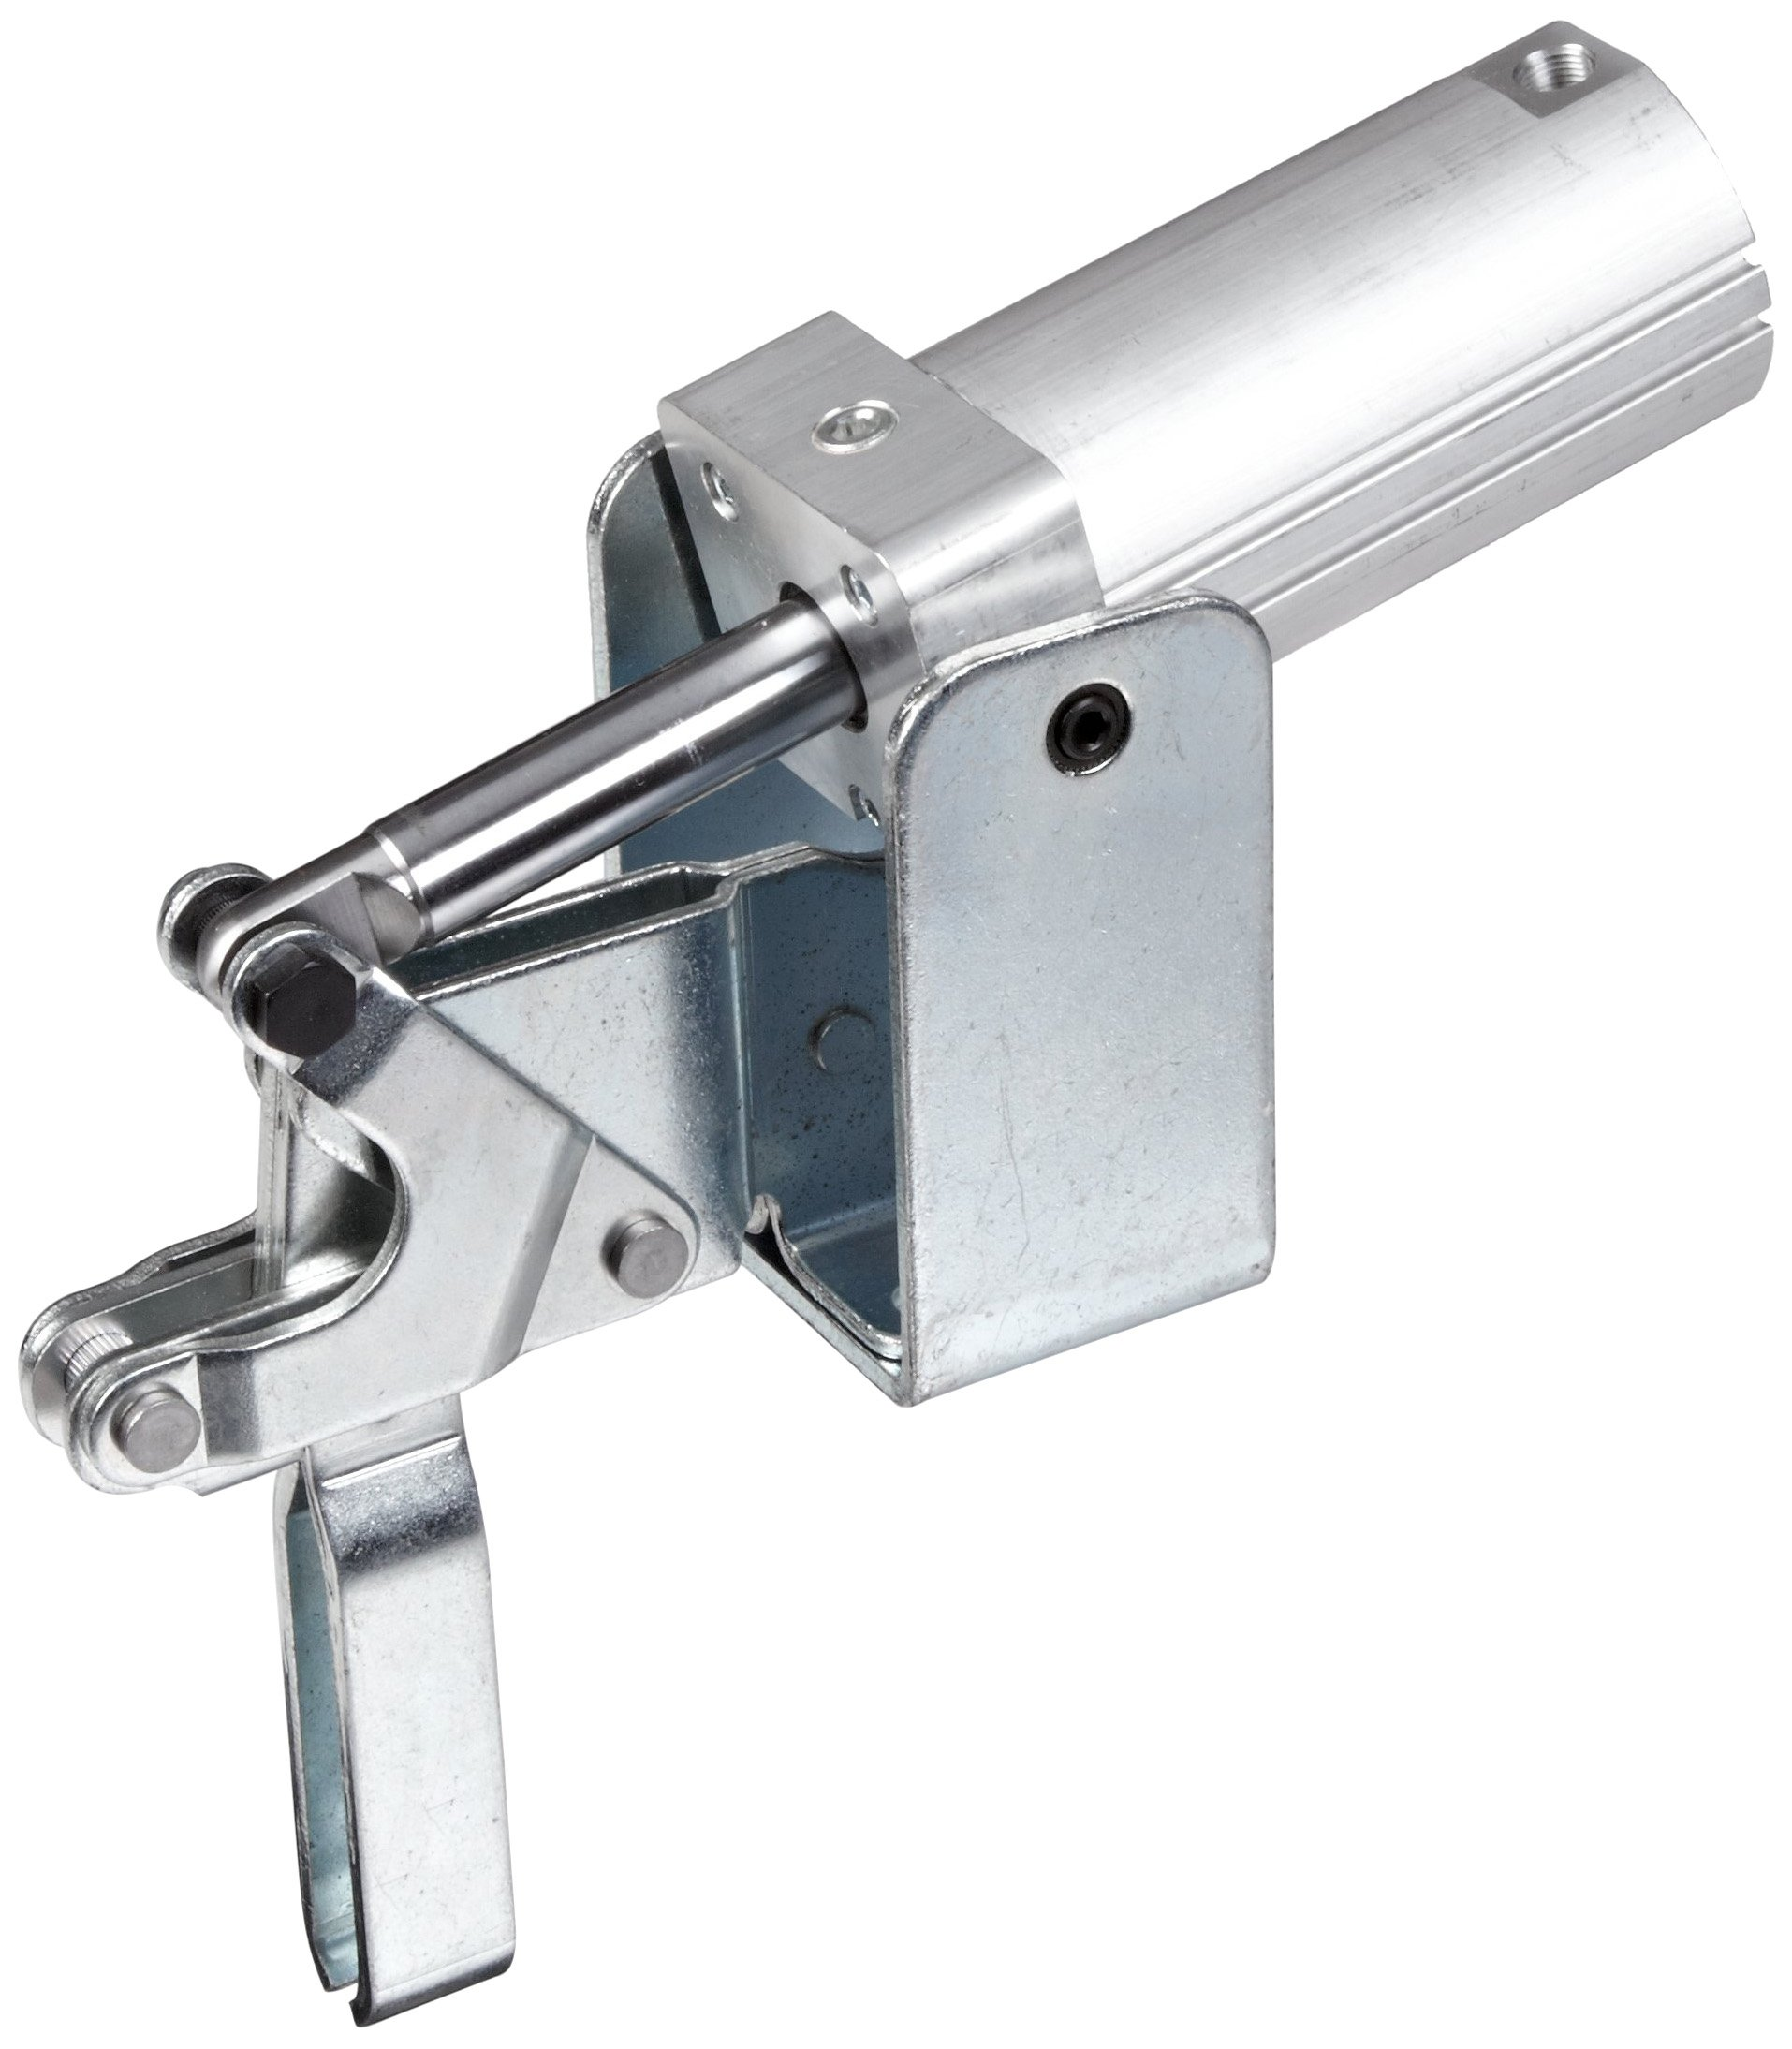 DE-STA-CO 827-U Pneumatic Hold Down Clamp